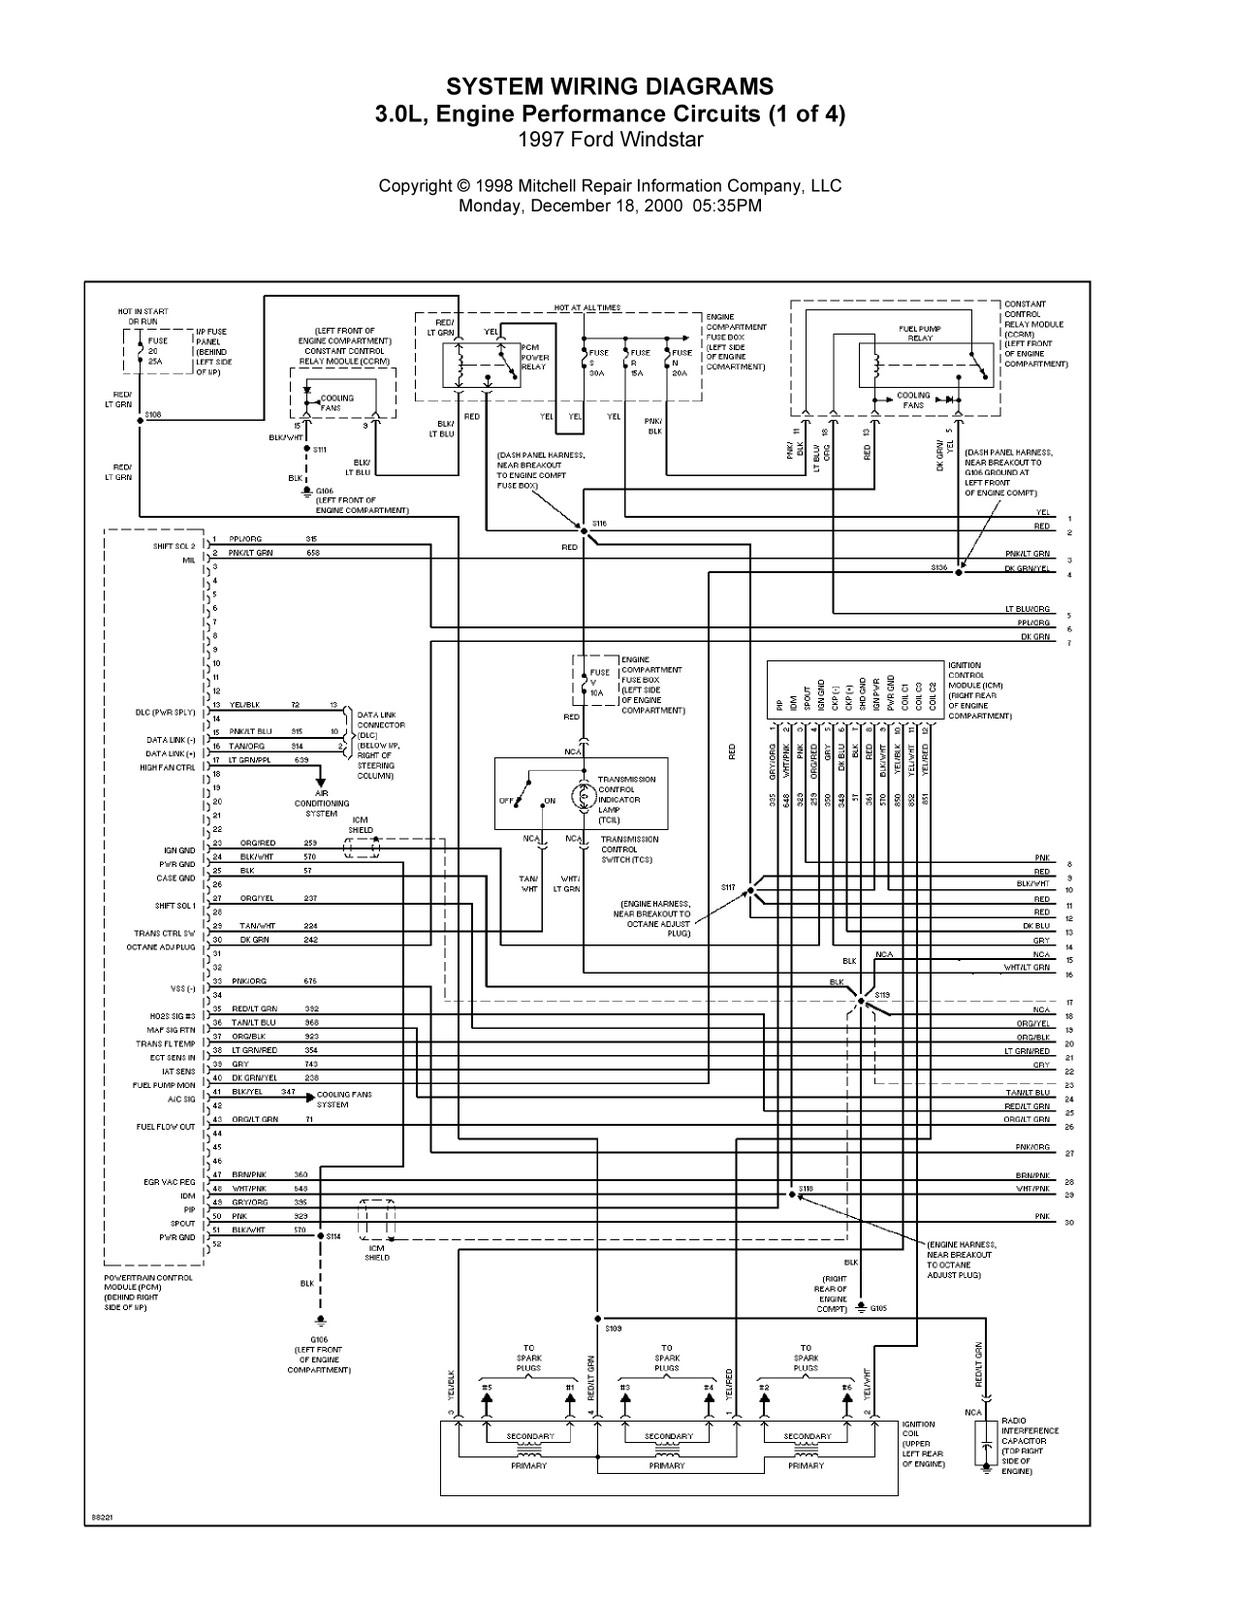 2003 Ford Windstar Radio Wiring Diagram from 2.bp.blogspot.com